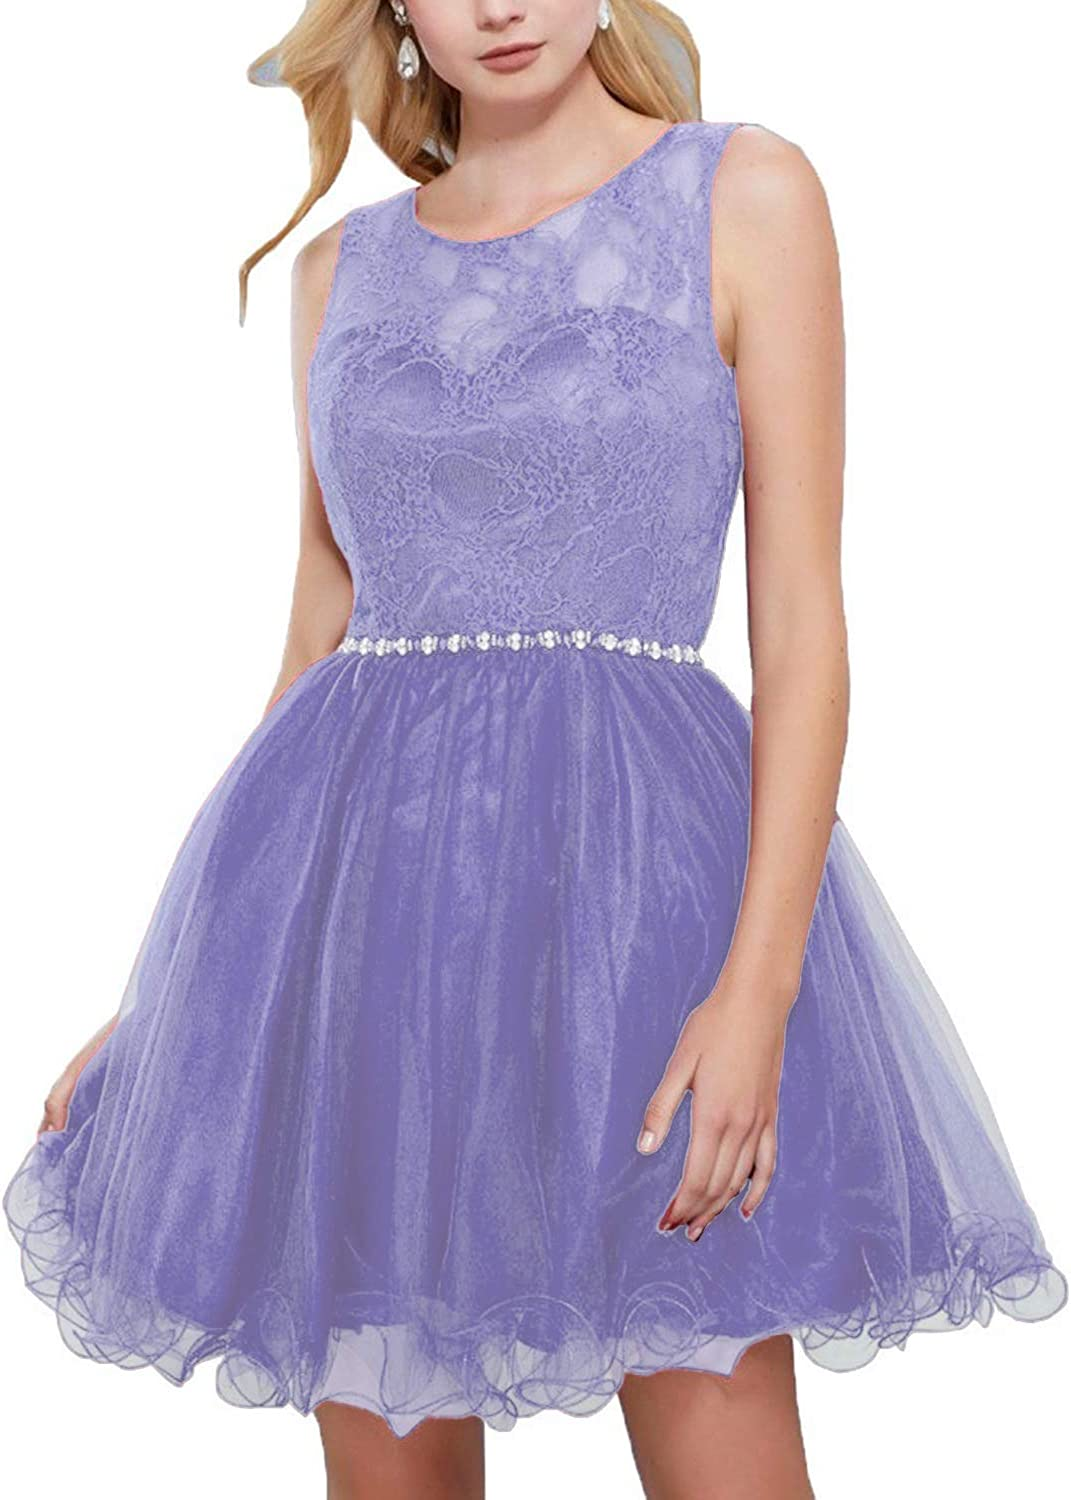 BessWedding Women's Tulle Homecoming Dresses Short 2018 Laceup Back Prom Dress BHS052